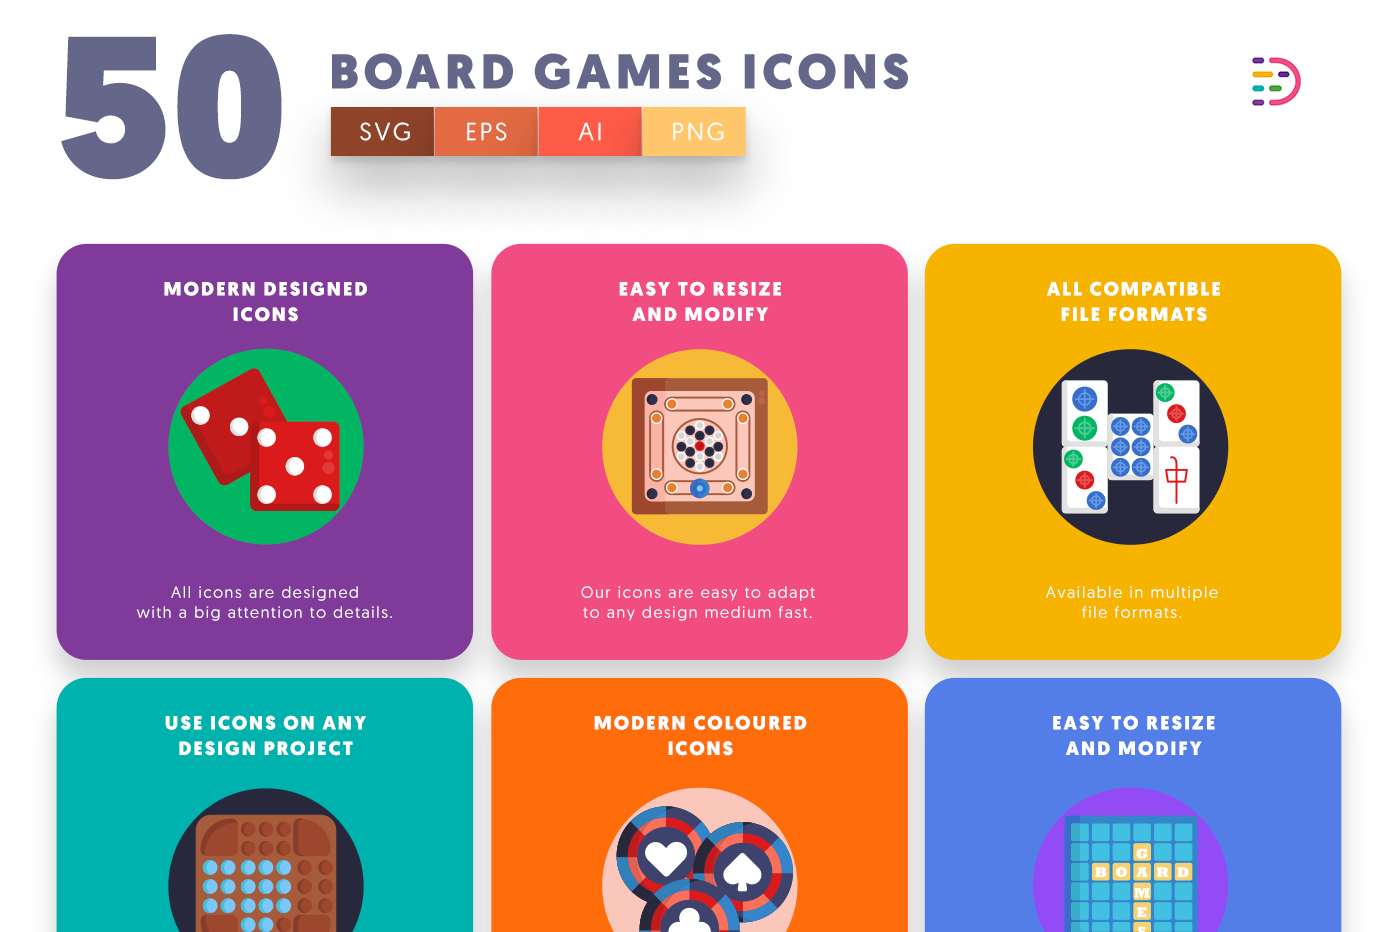 50 Board Games Icons with colored backgrounds